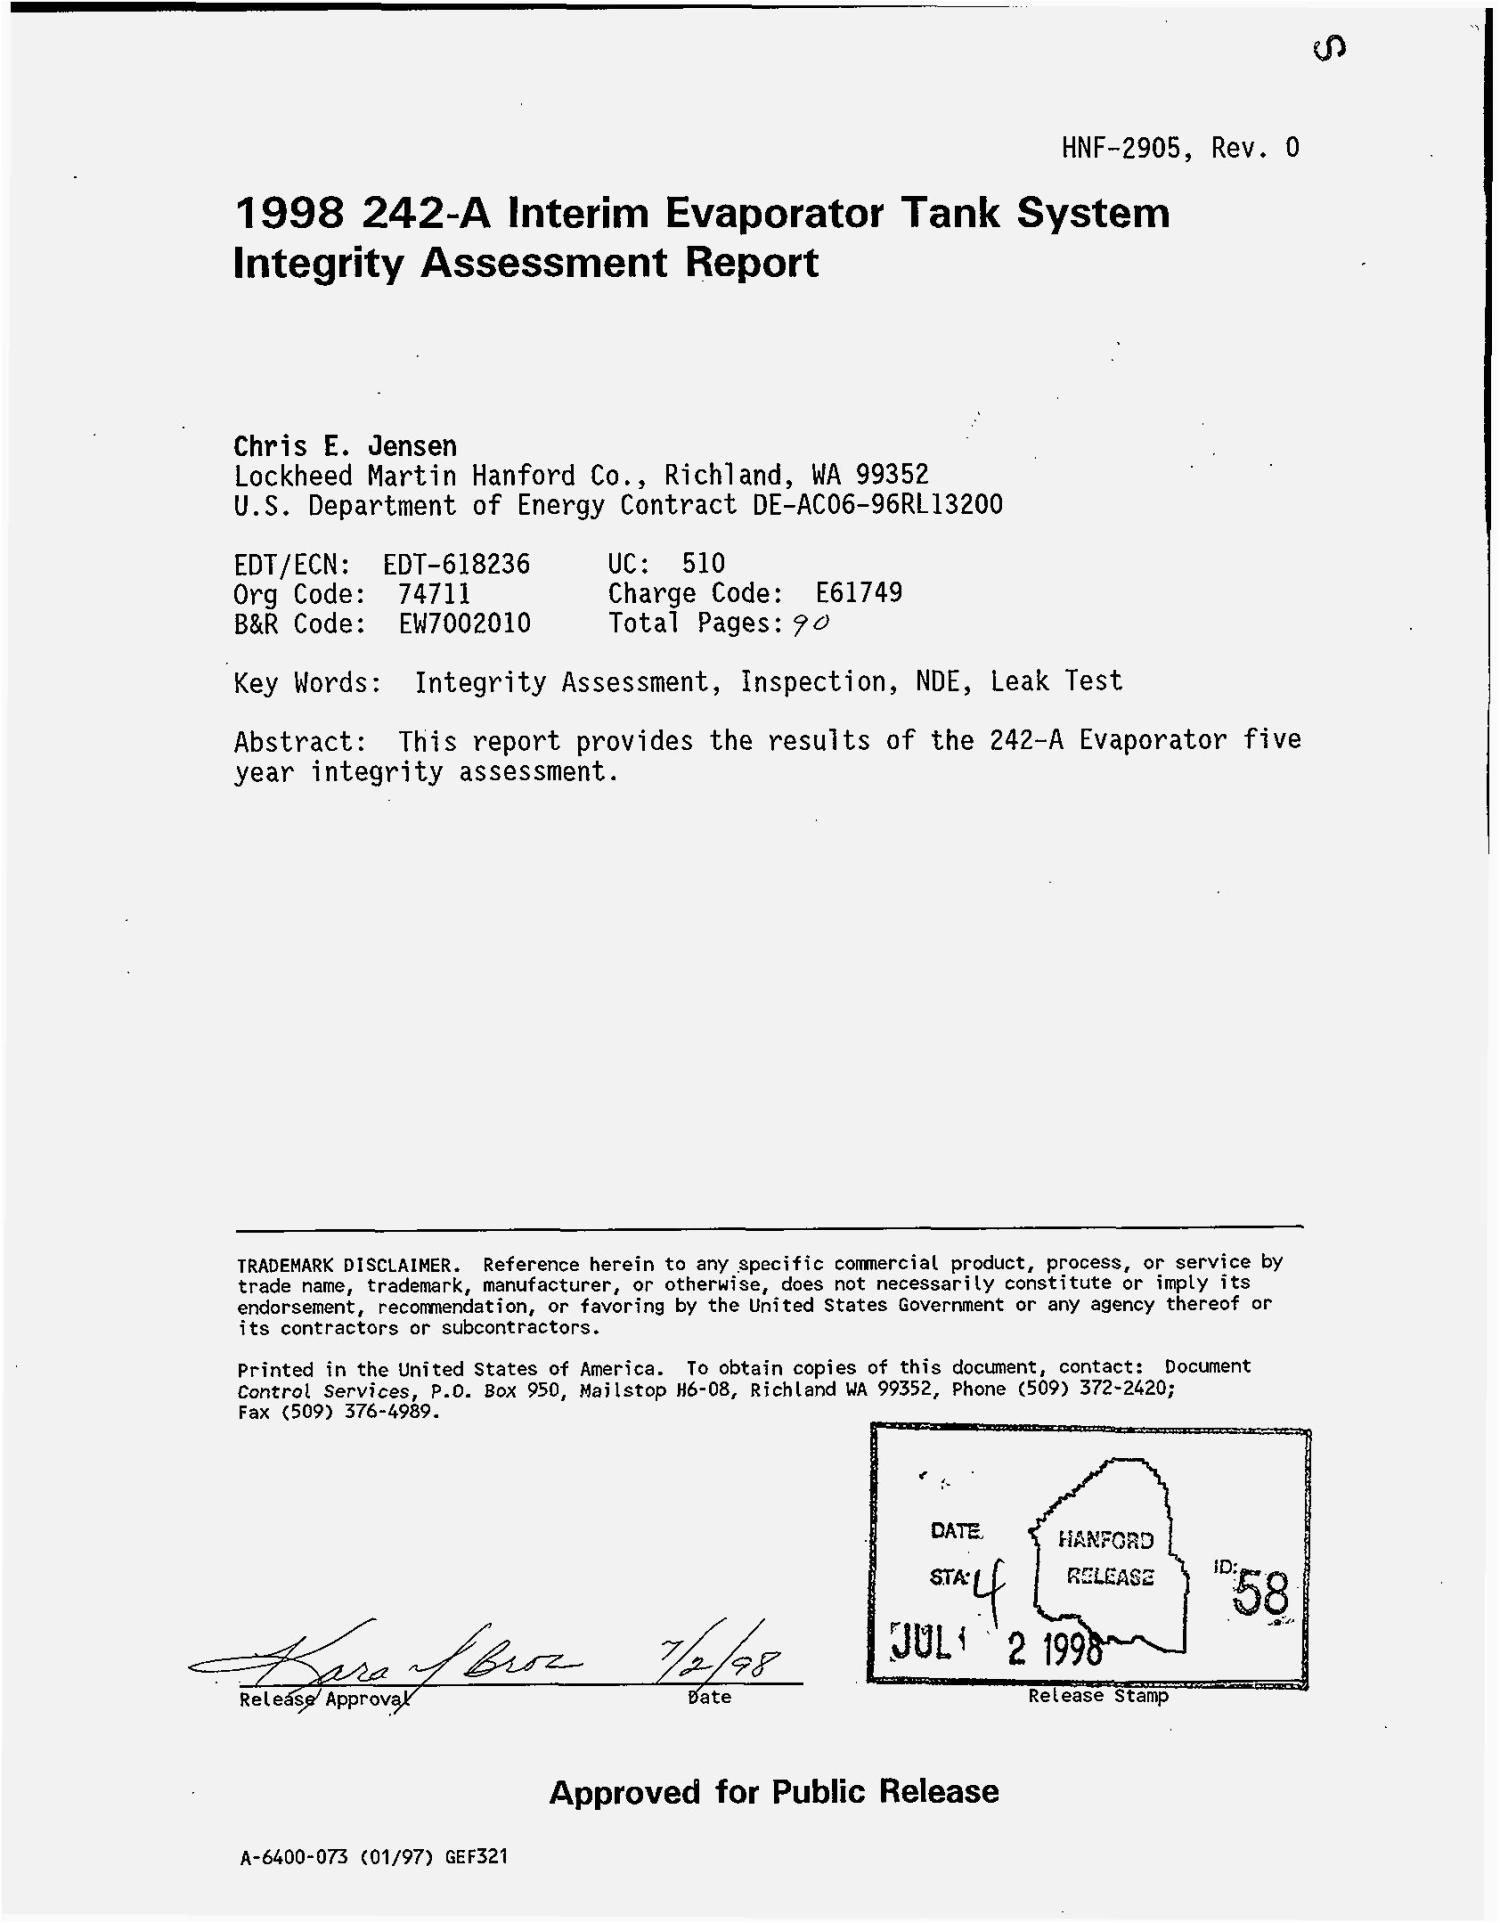 1998 interim 242-A Evaporator tank system integrity assessment report                                                                                                      [Sequence #]: 2 of 92